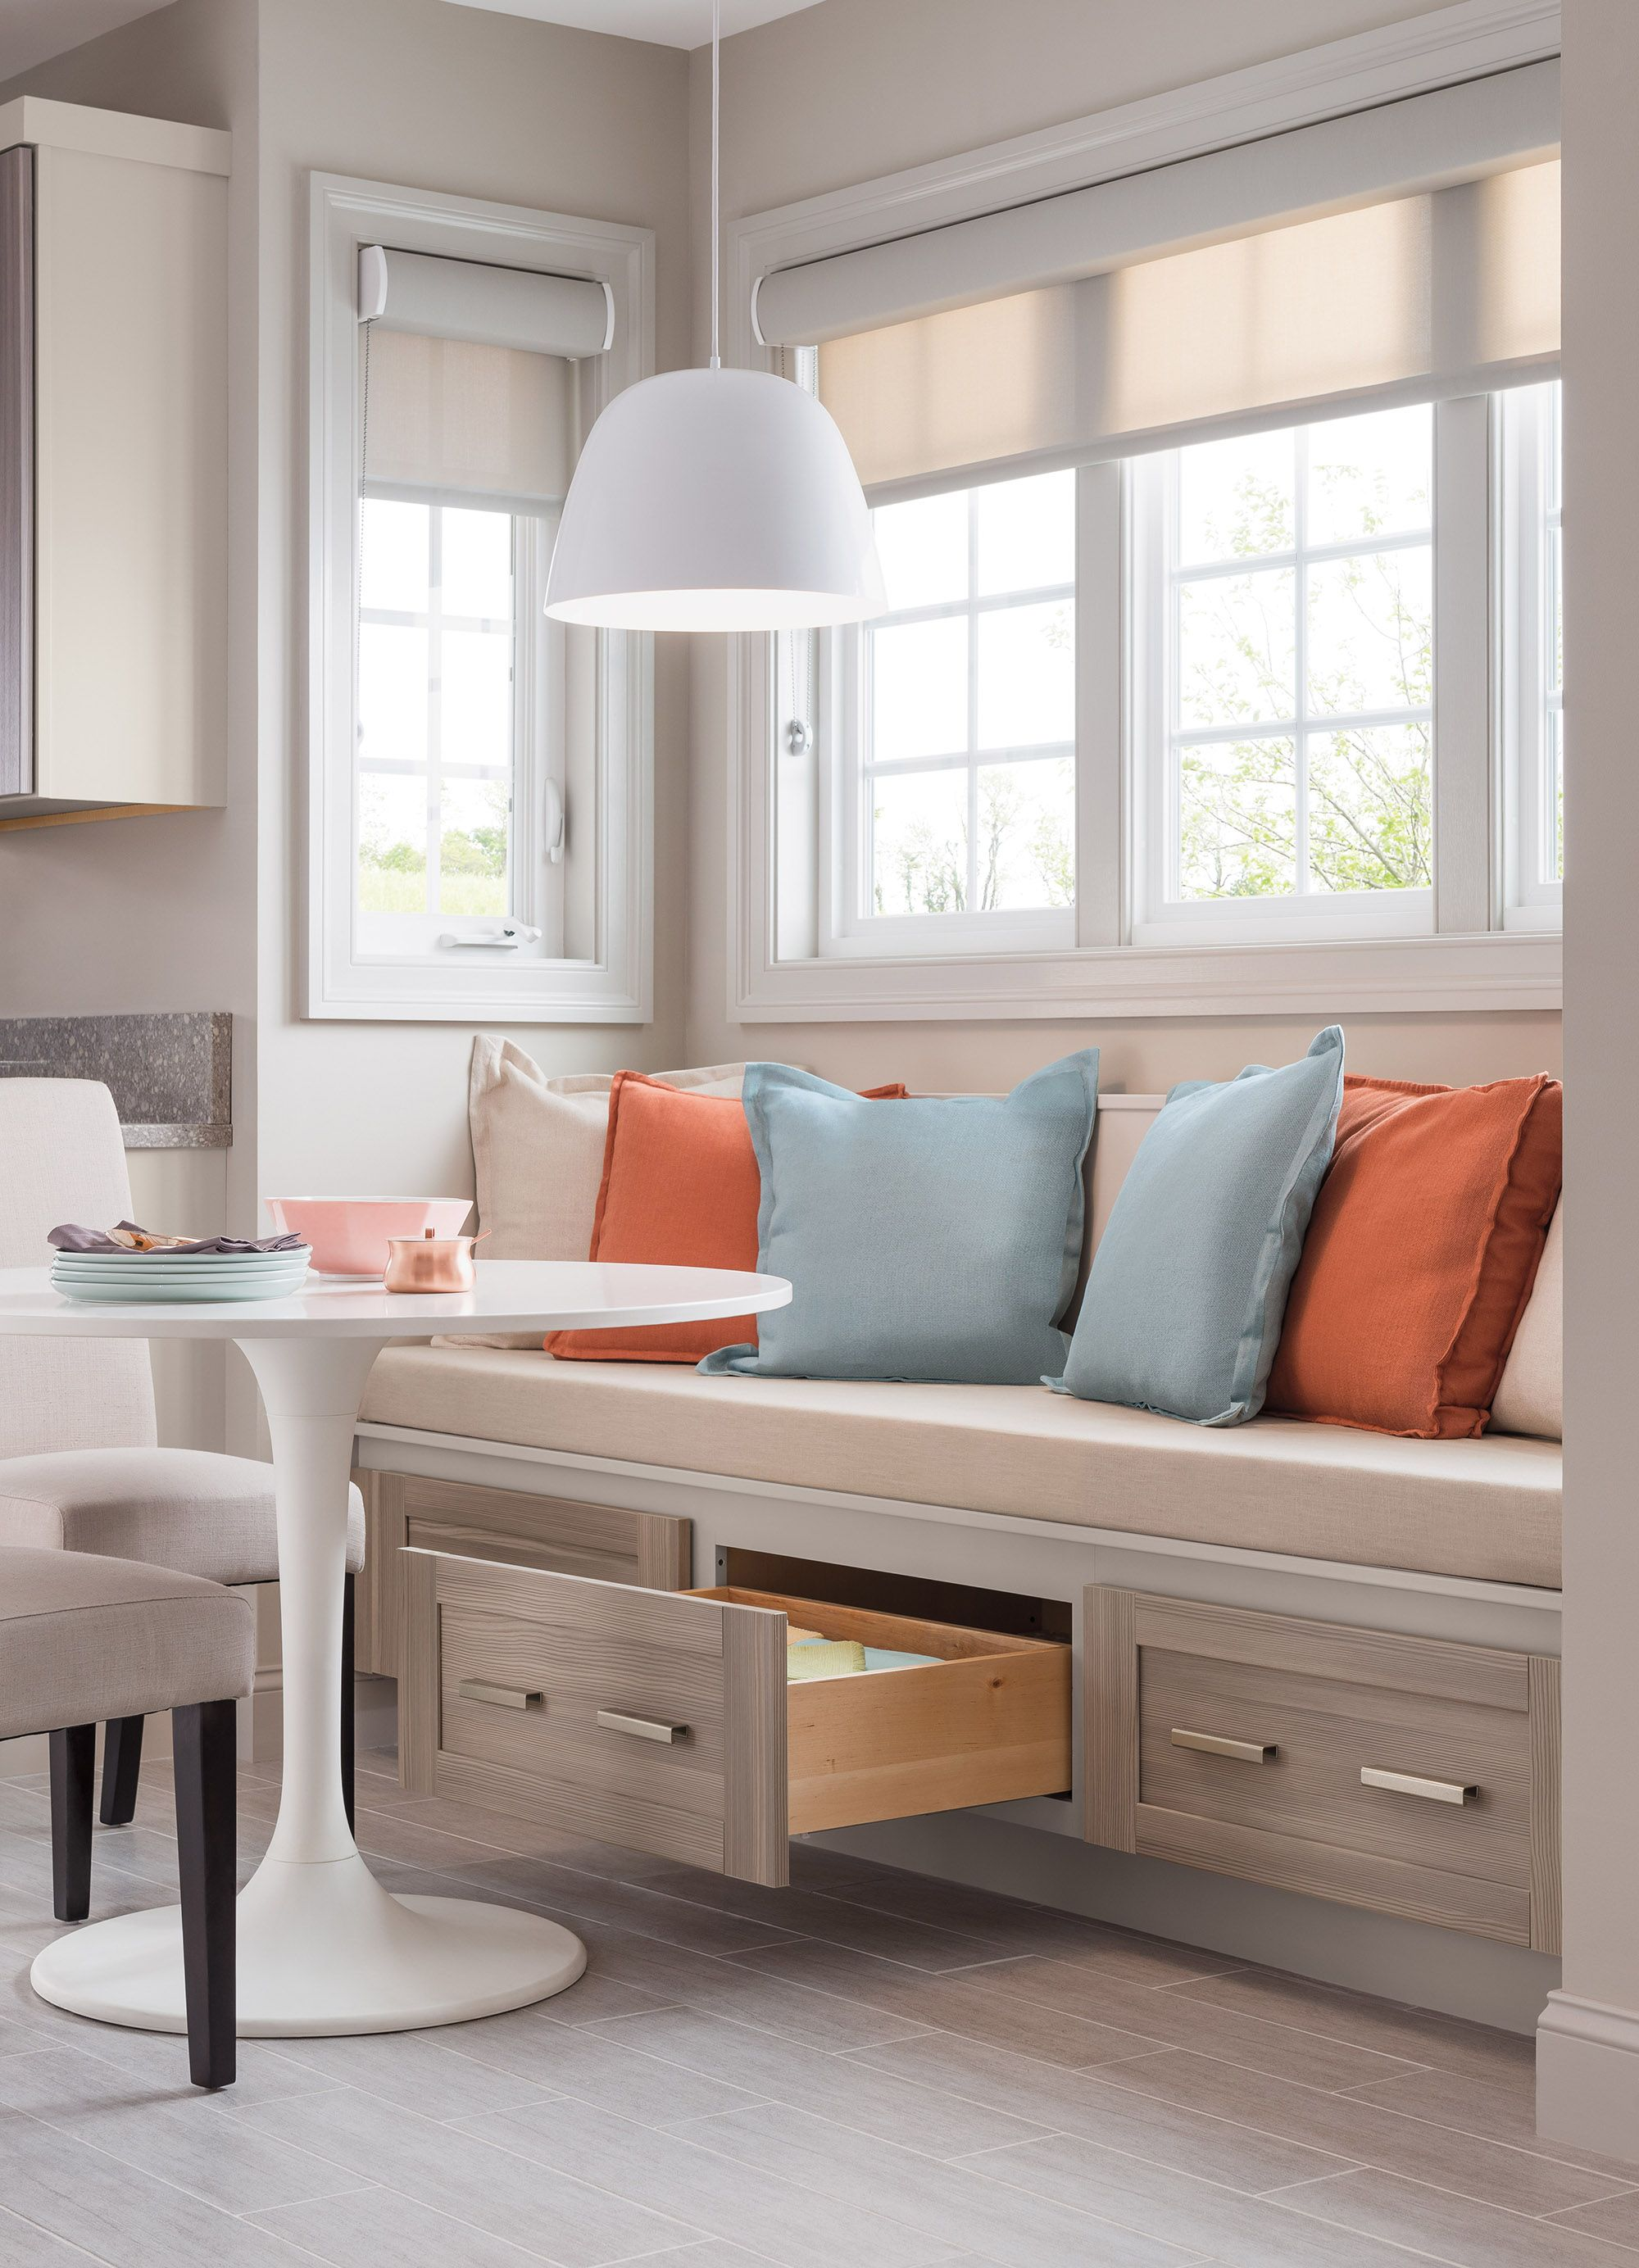 Ordinaire Eating Nook Save Space And Create More Seating Using Kitchen Cabinetry As A  Bench! Learn How To Create The Perfect Kitchen.